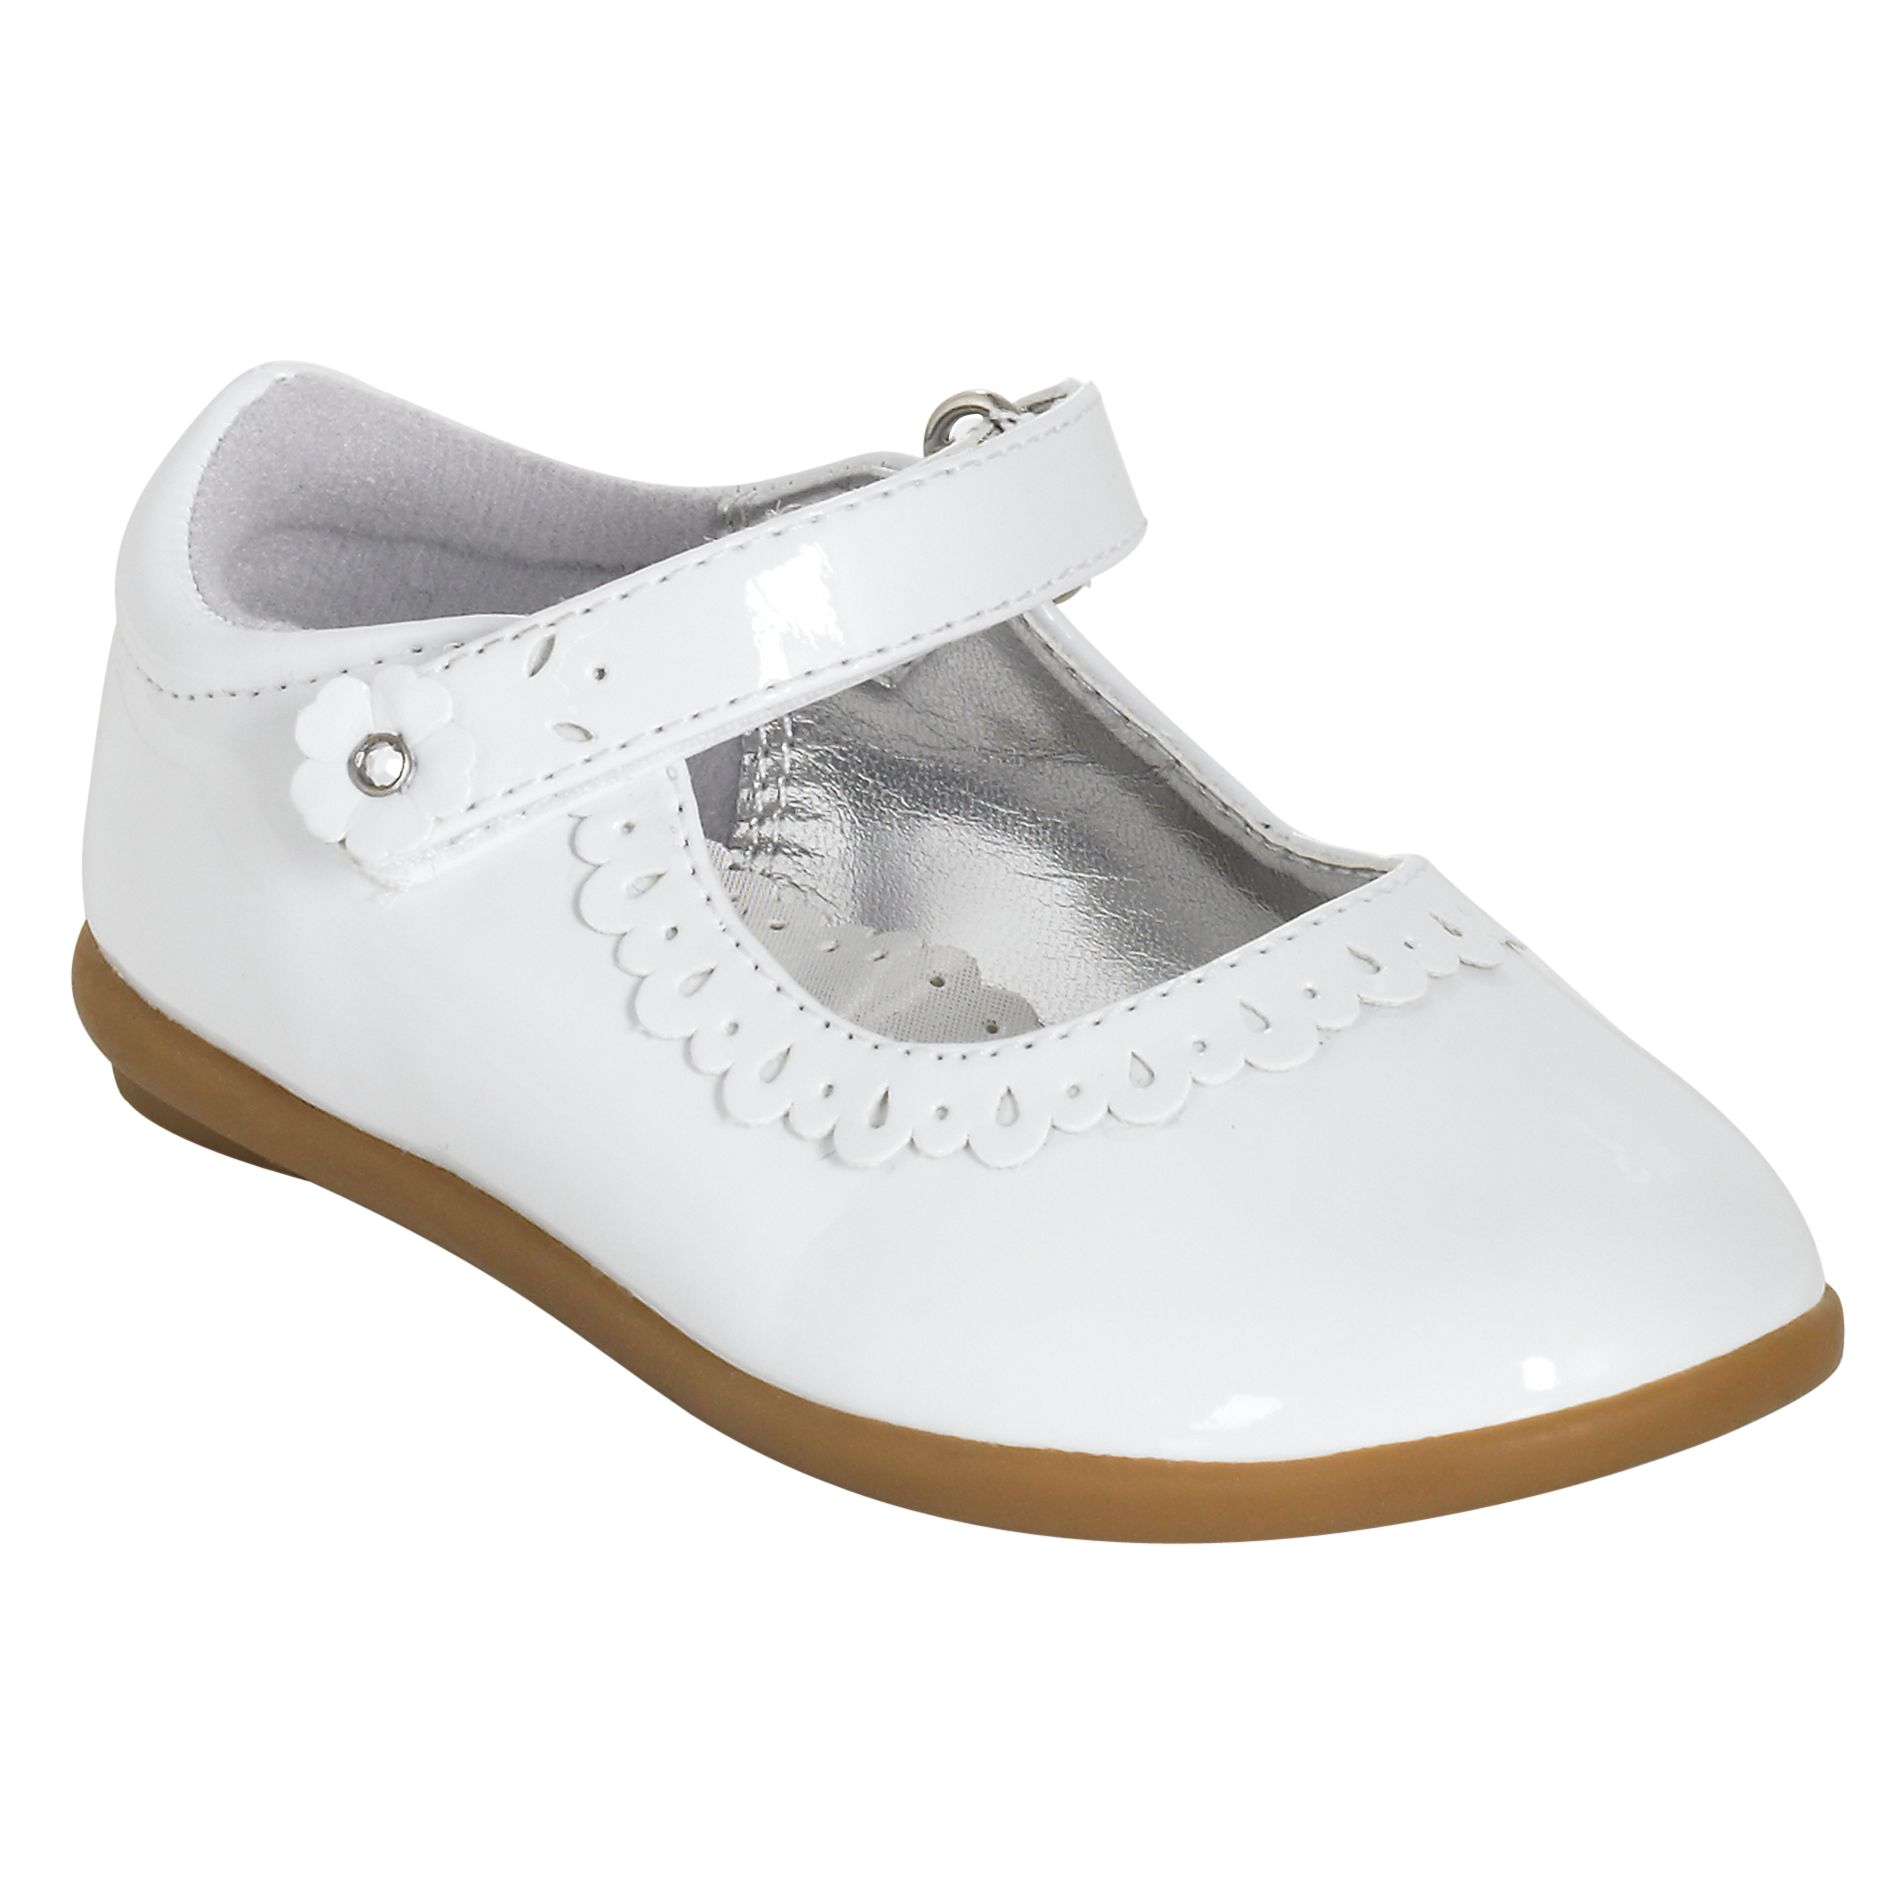 Infants Shoes at mygofer.com